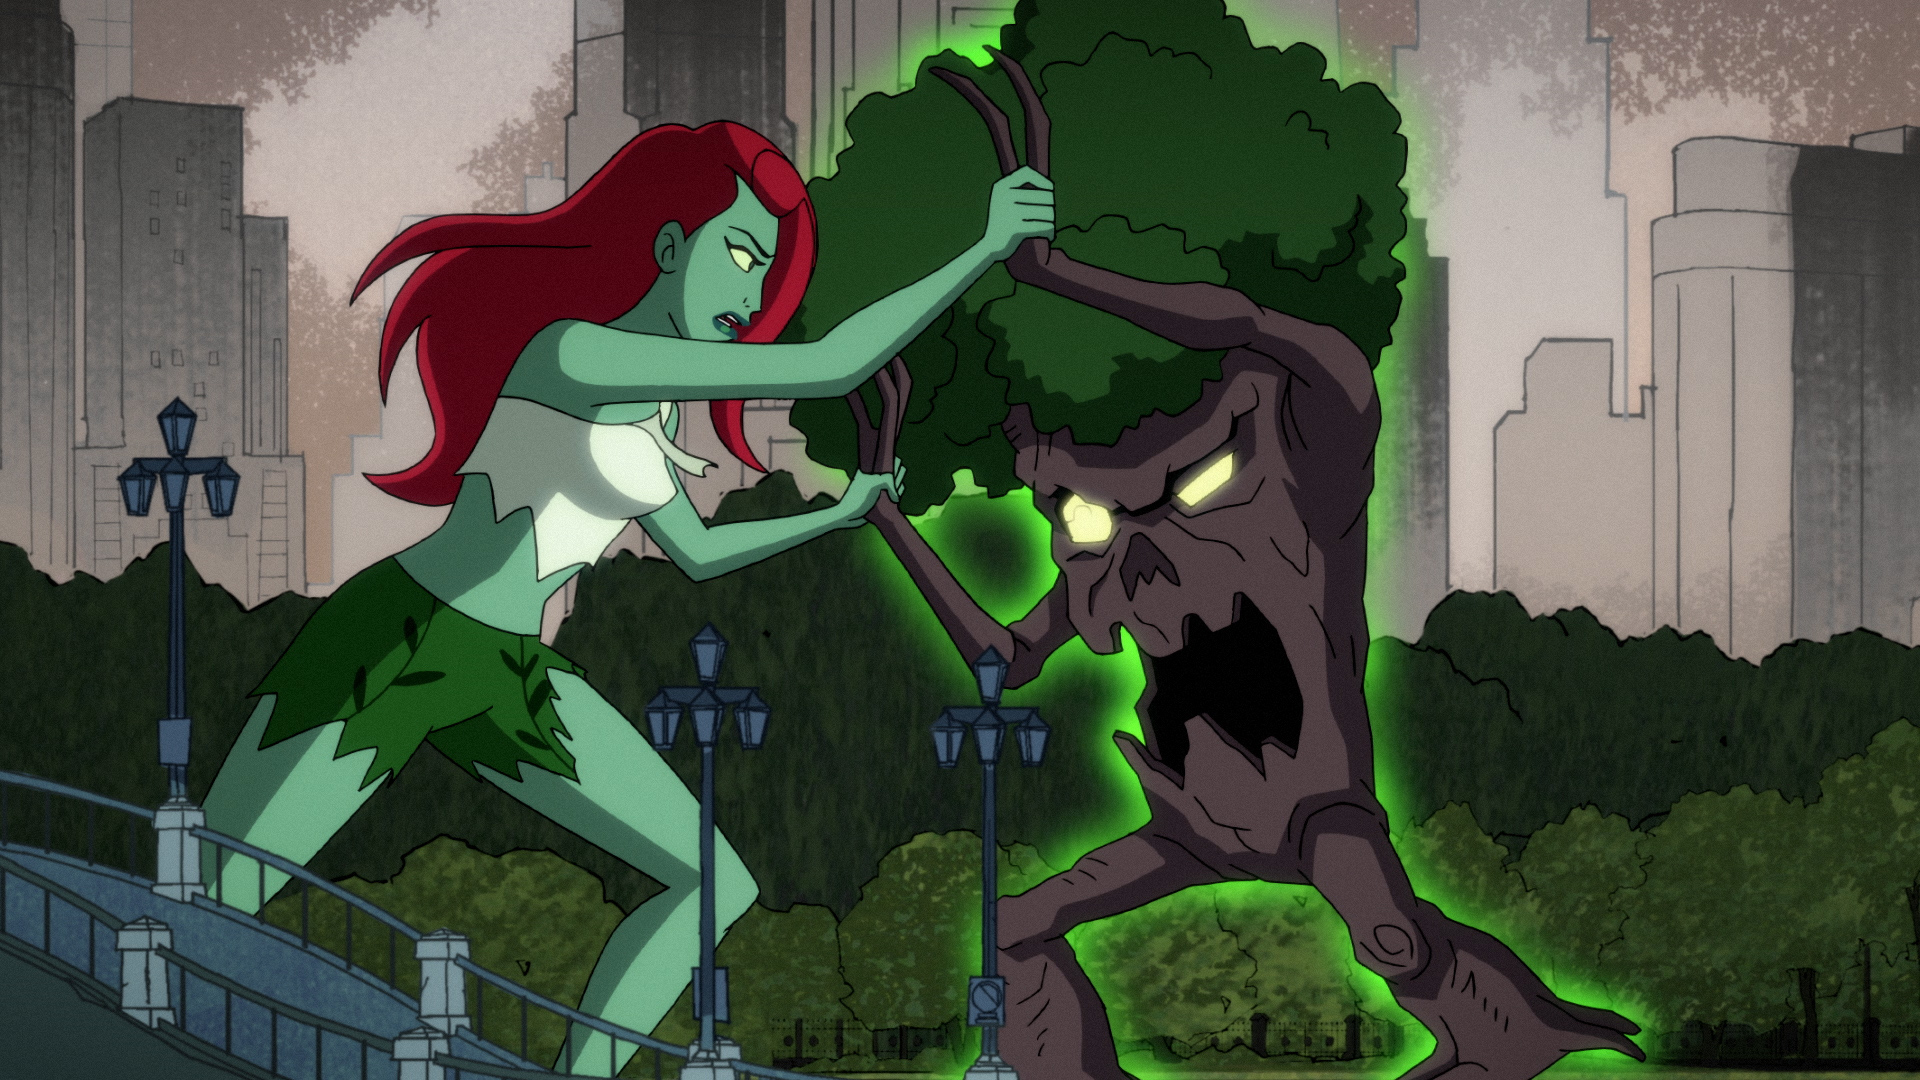 Poison Ivy fighting off a tree that's modified by her powers in Season 1